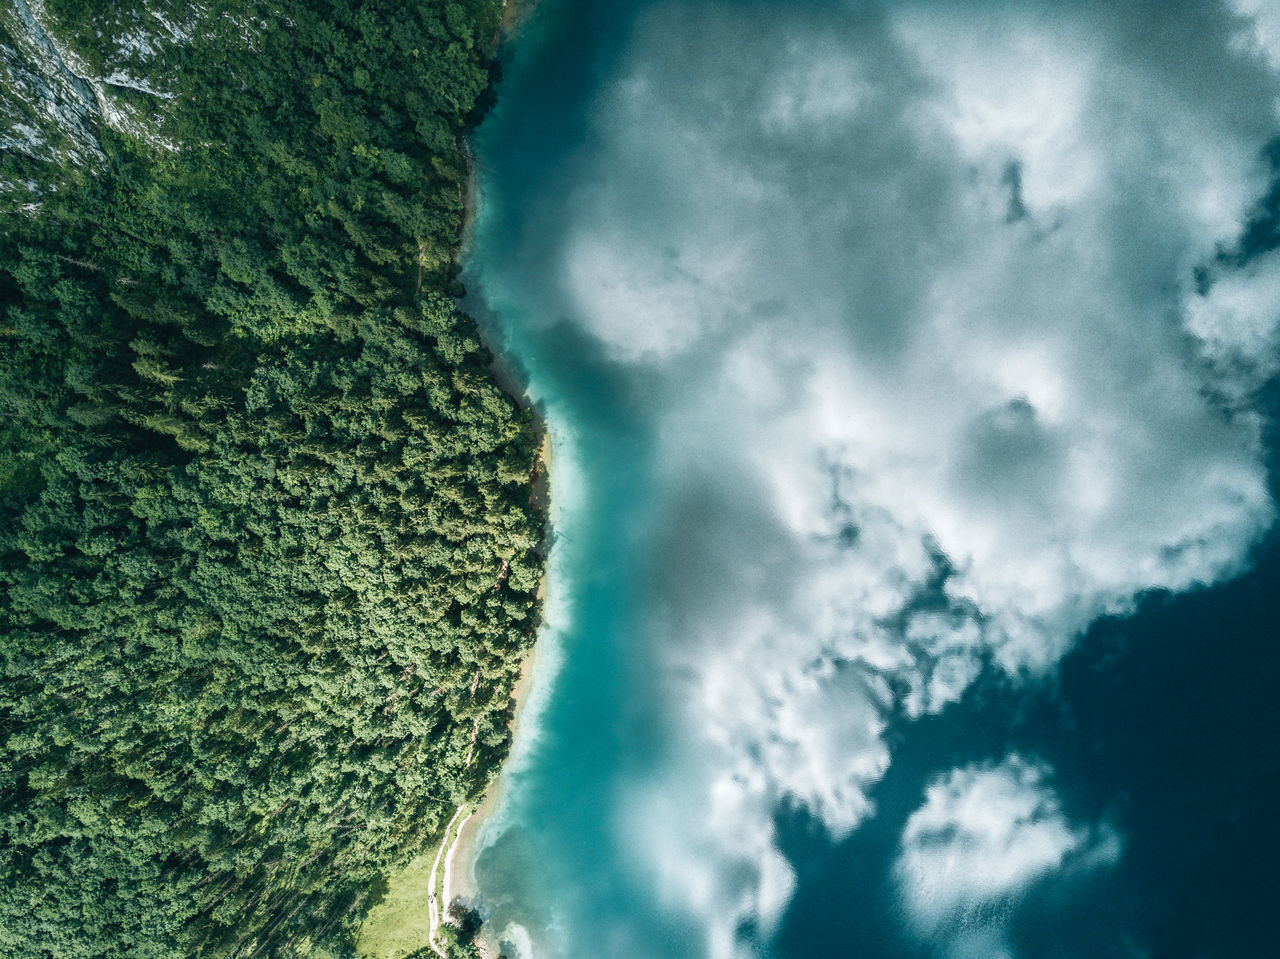 Aerial image of a mountain lake with reflection. Beauty In Nature Cloud - Sky Day Nature No People Outdoors Scenics Sky Tree The Week On EyeEm